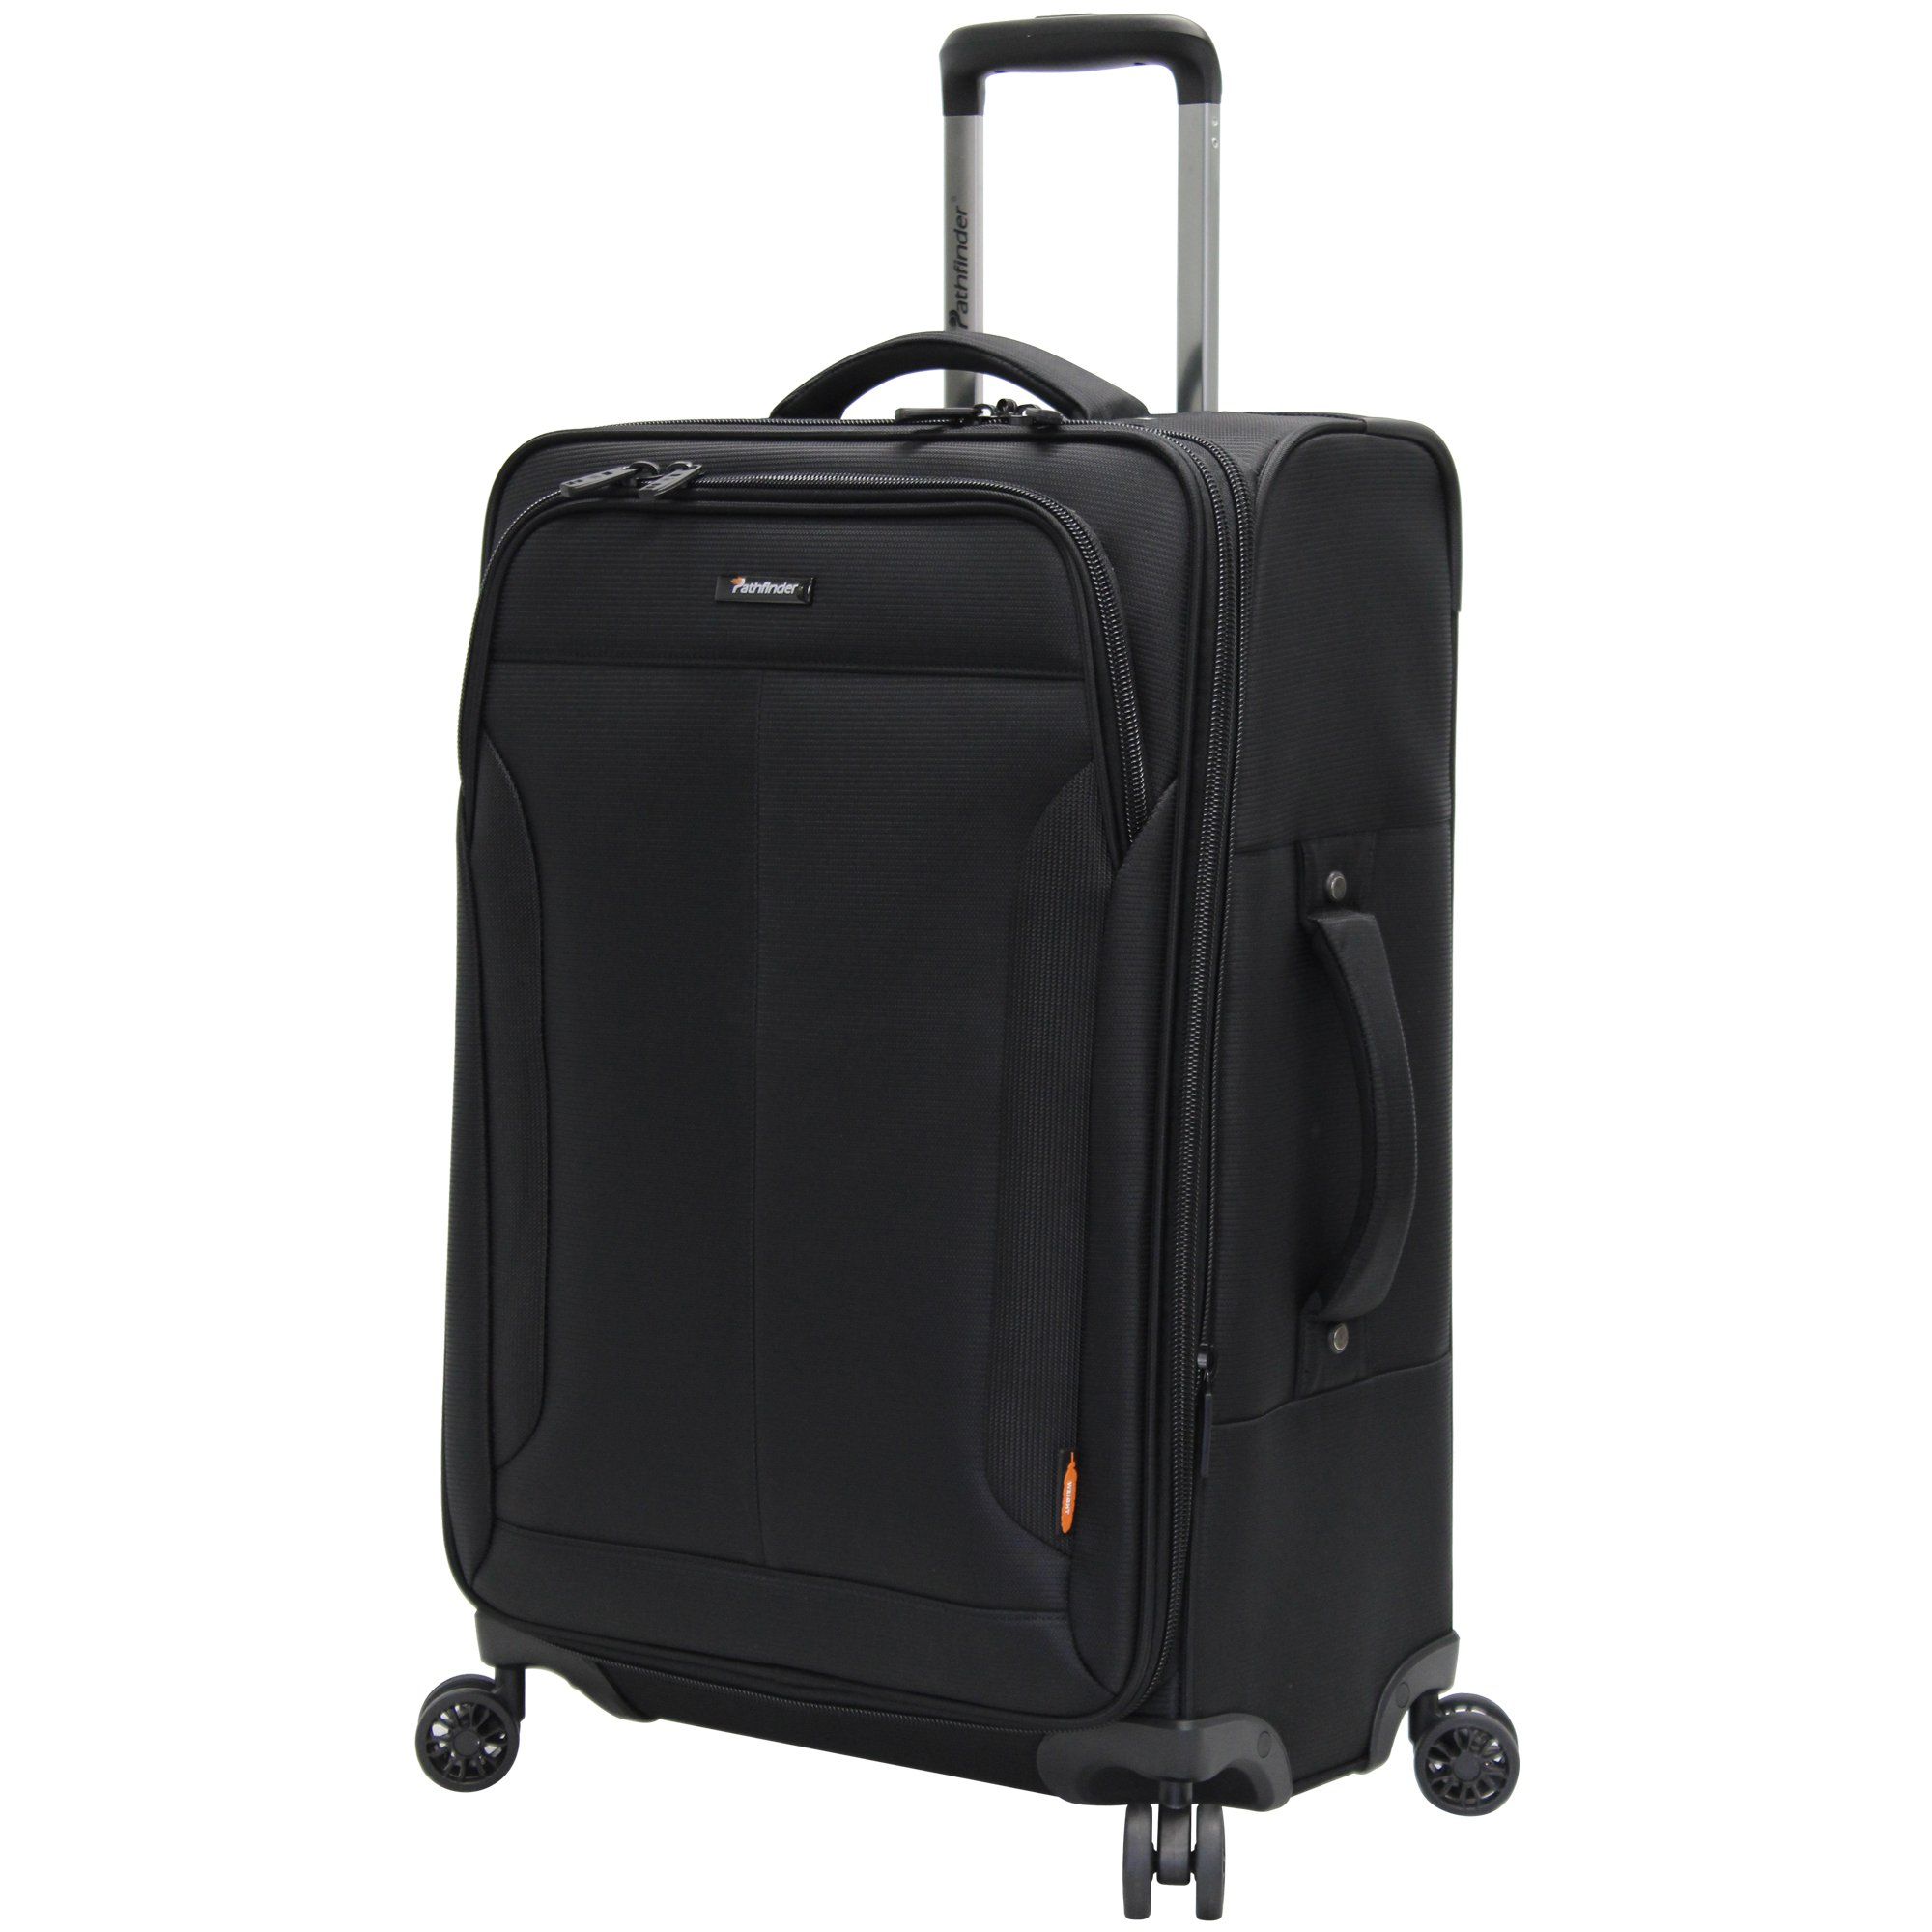 Pathfinder Luggage PX-10 Large 28'' Expandable Suitcase With Spinner Wheels (28in, Black)